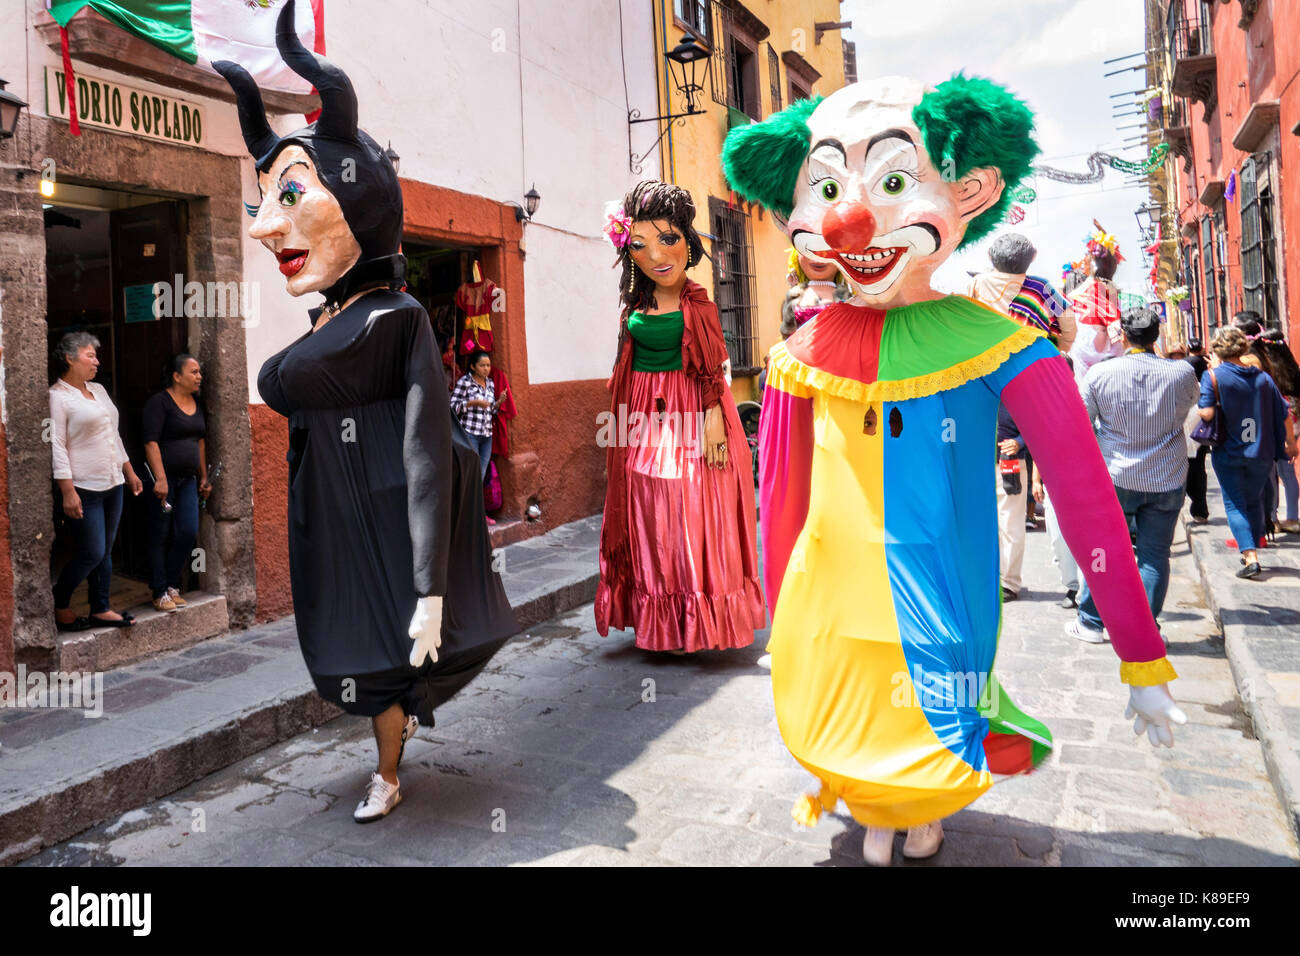 Giant papier mache puppets called mojigangas dance in the streets during a children's parade celebrating Mexican - Stock Image